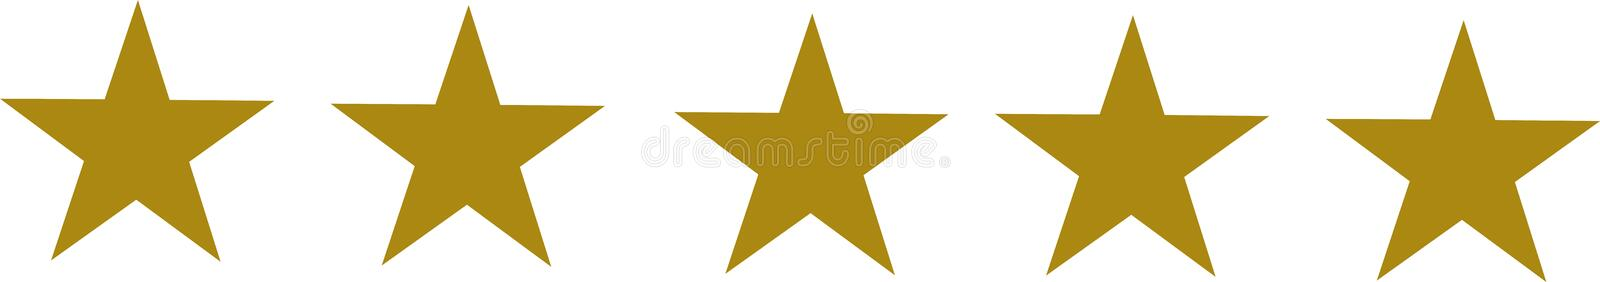 Five golden stars set royalty free stock image